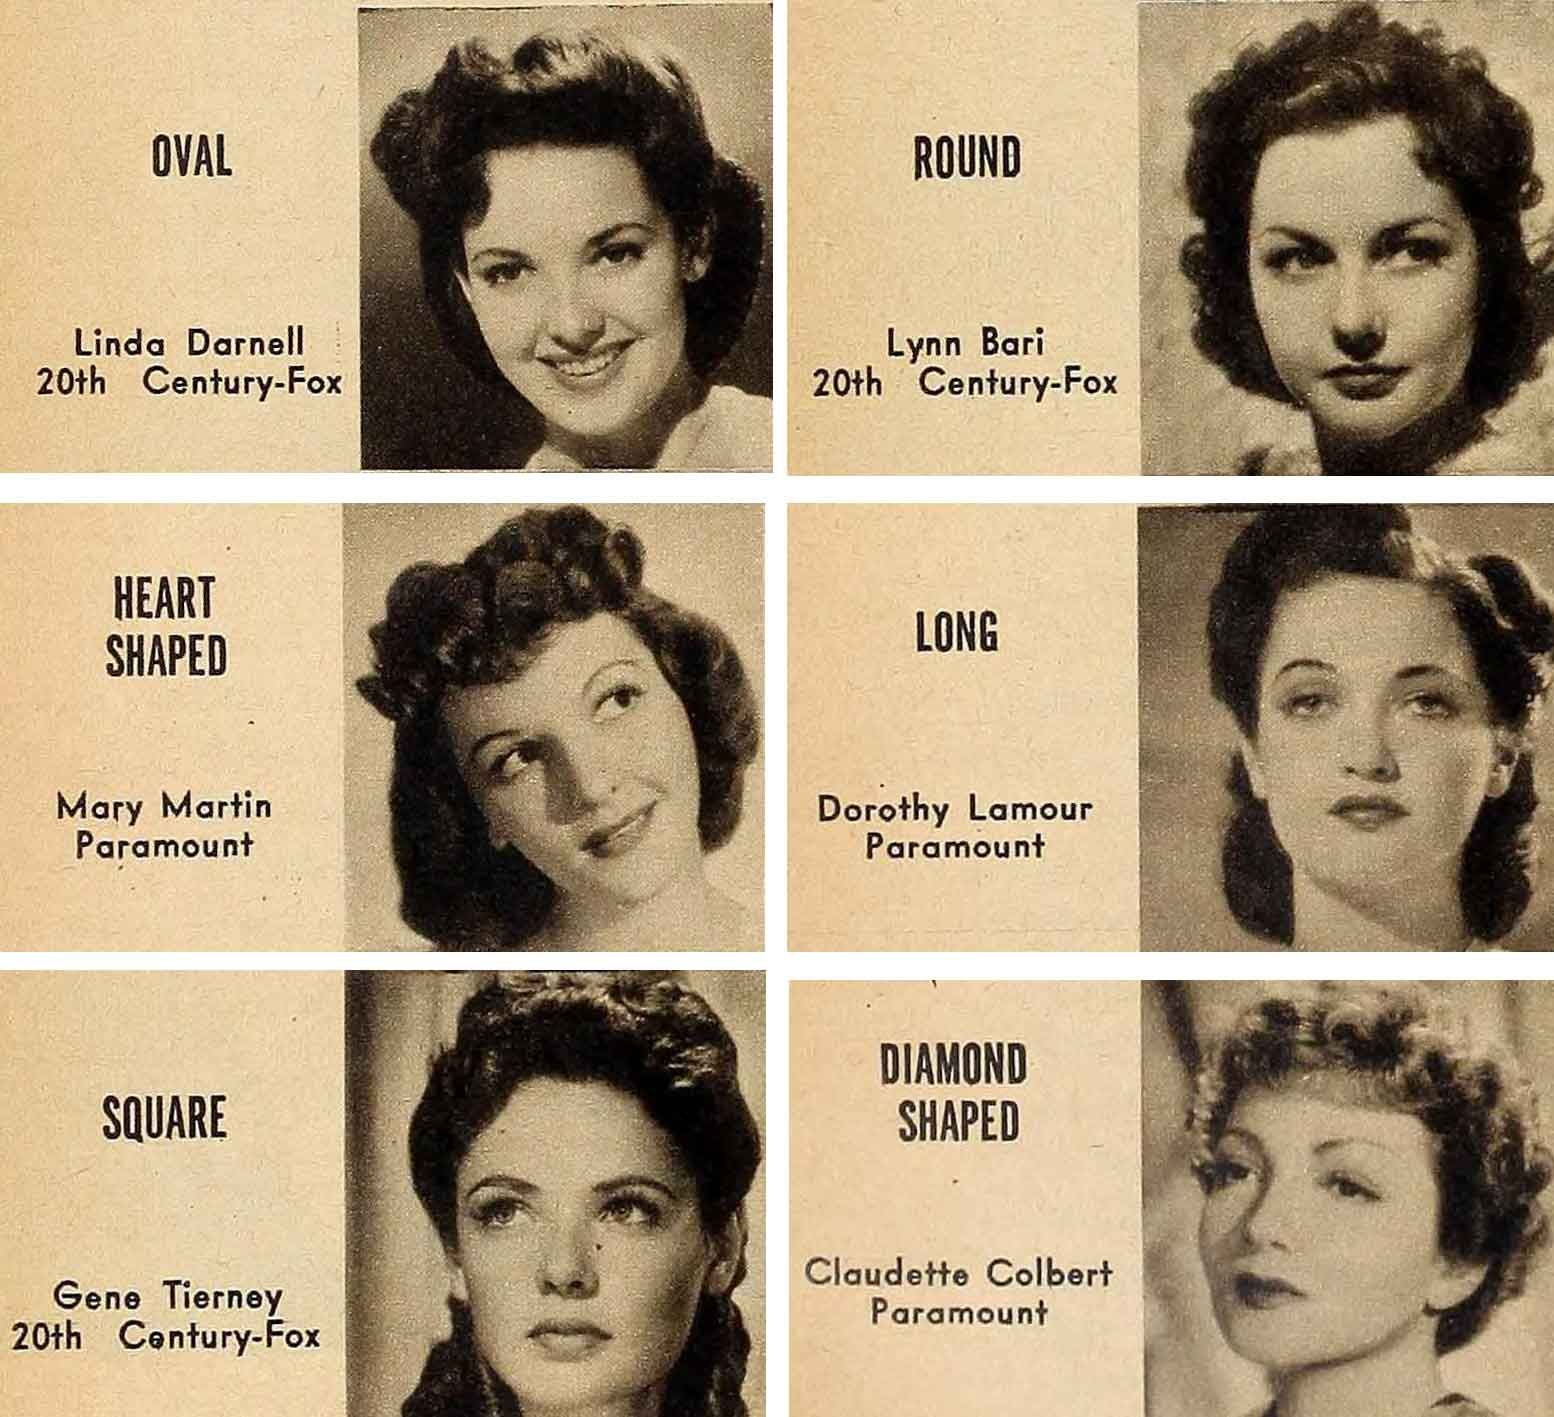 1940 S Bombshell Hair And Make Up Looks To Try From 1942 Bombshell Hair 1940s Hairstyles Retro Hairstyles